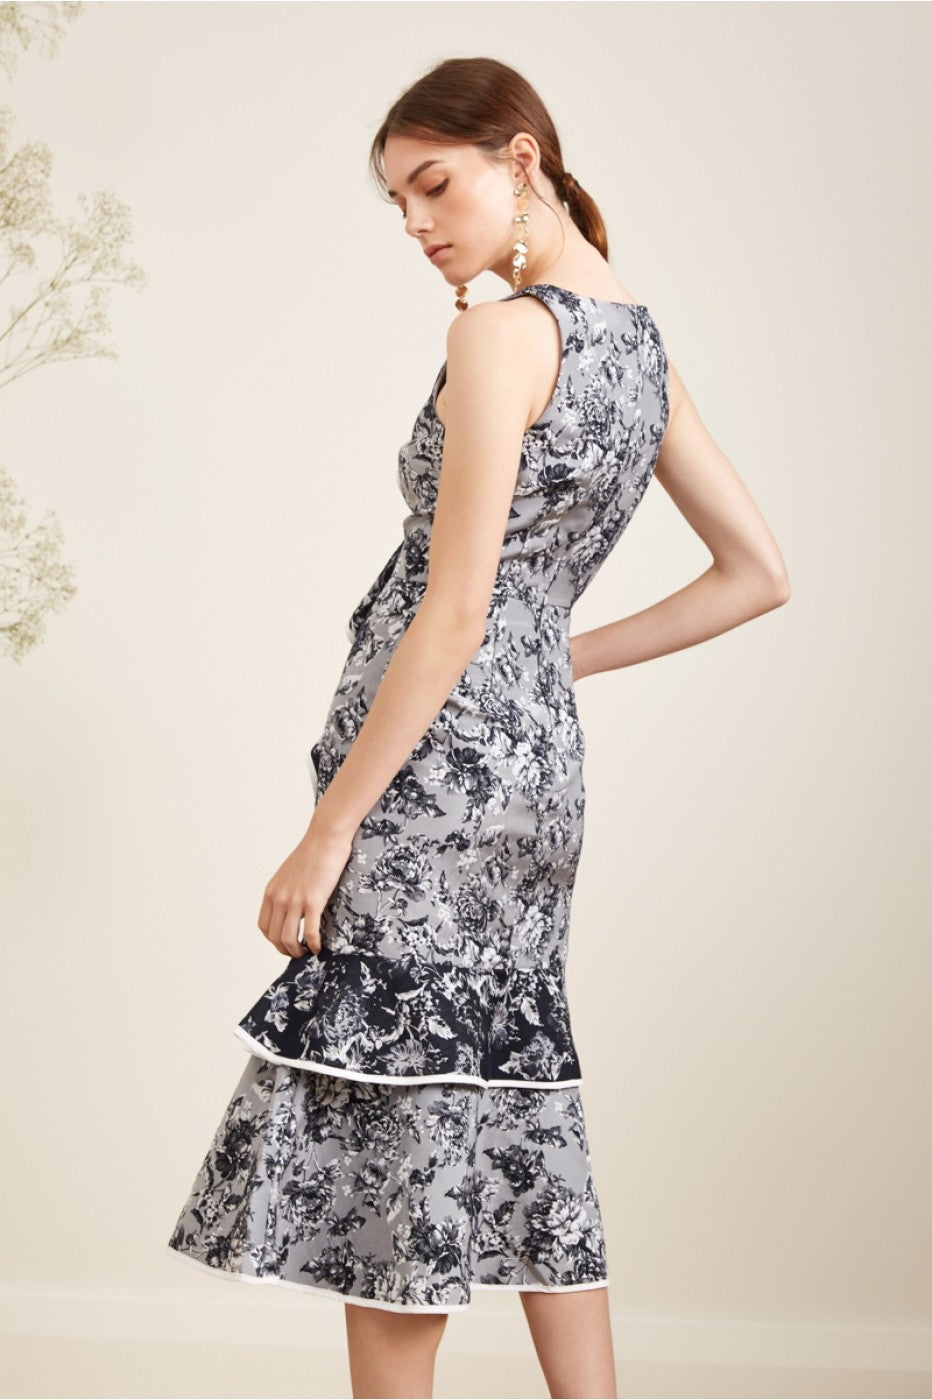 GREY/NAVY FLORAL MIDI DRESS